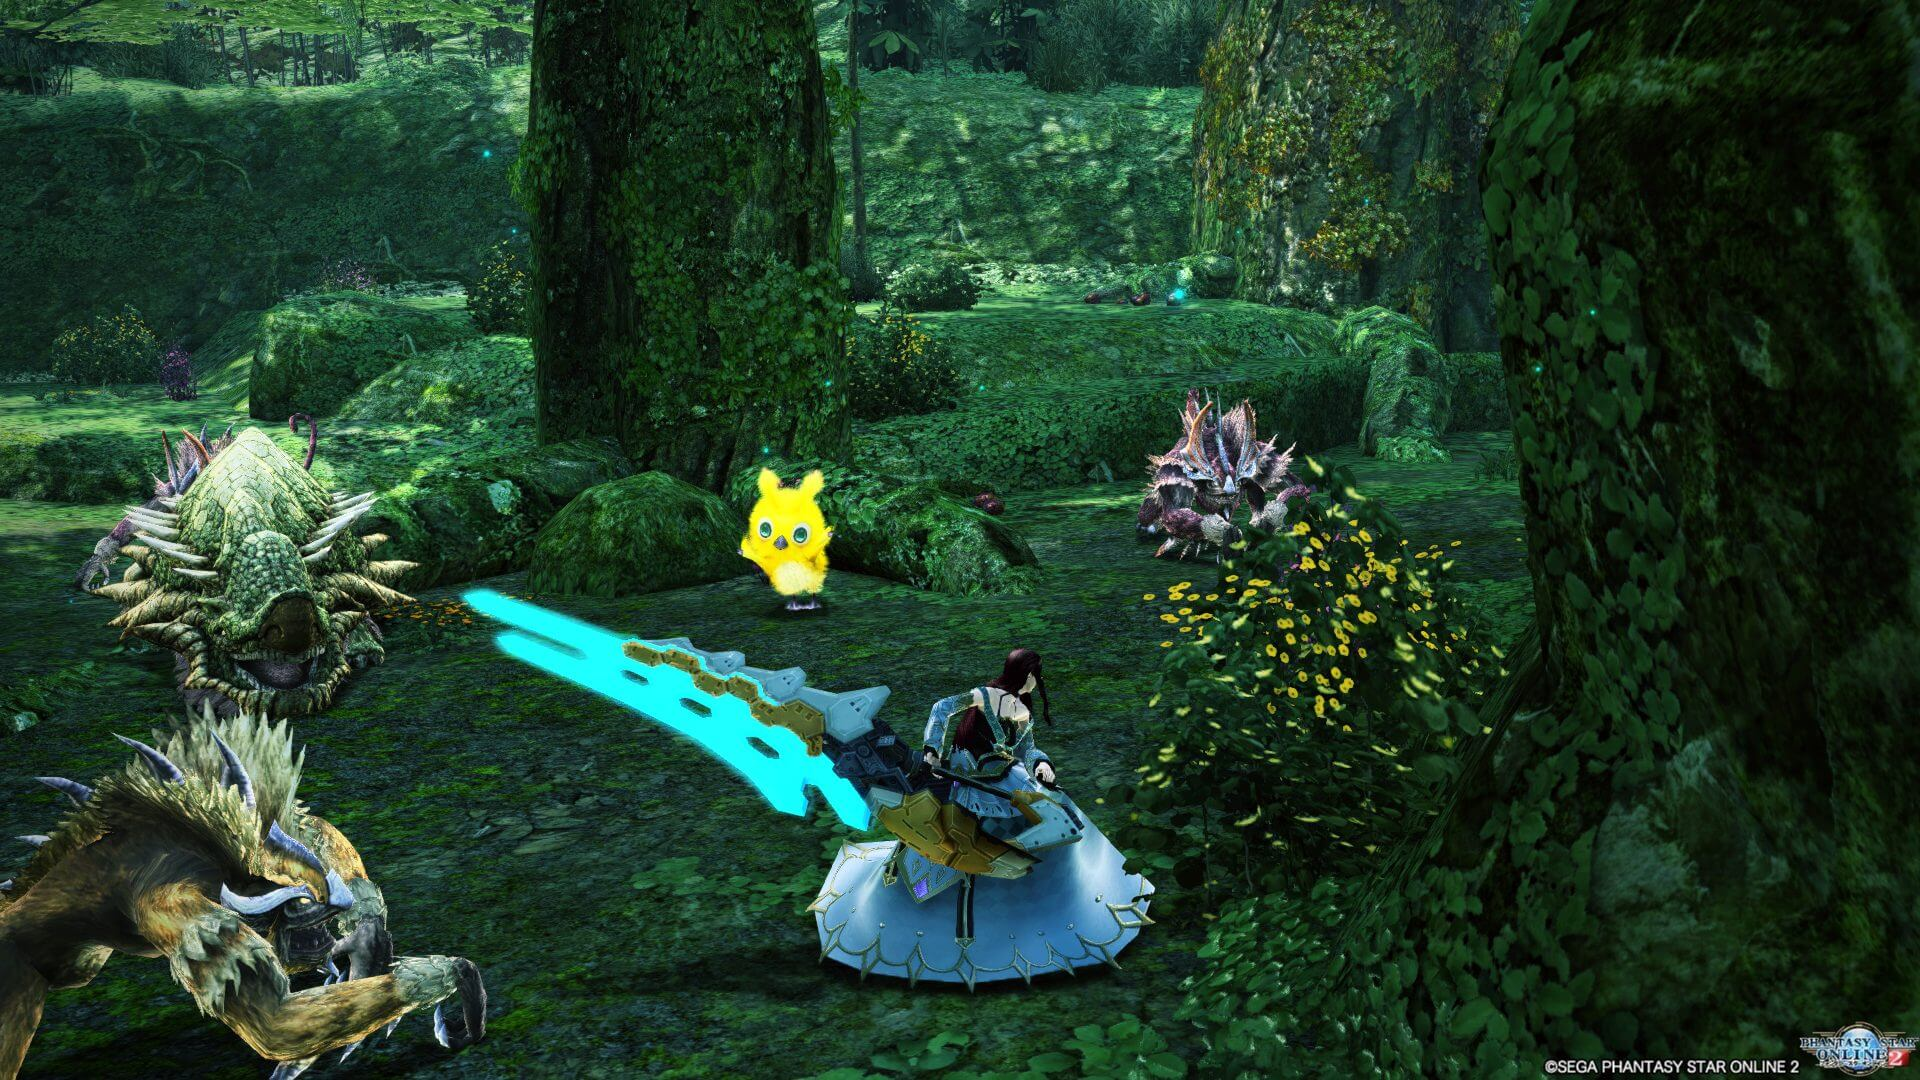 Phantasy Star Online 2 (Finally) Gets a Western Release Date